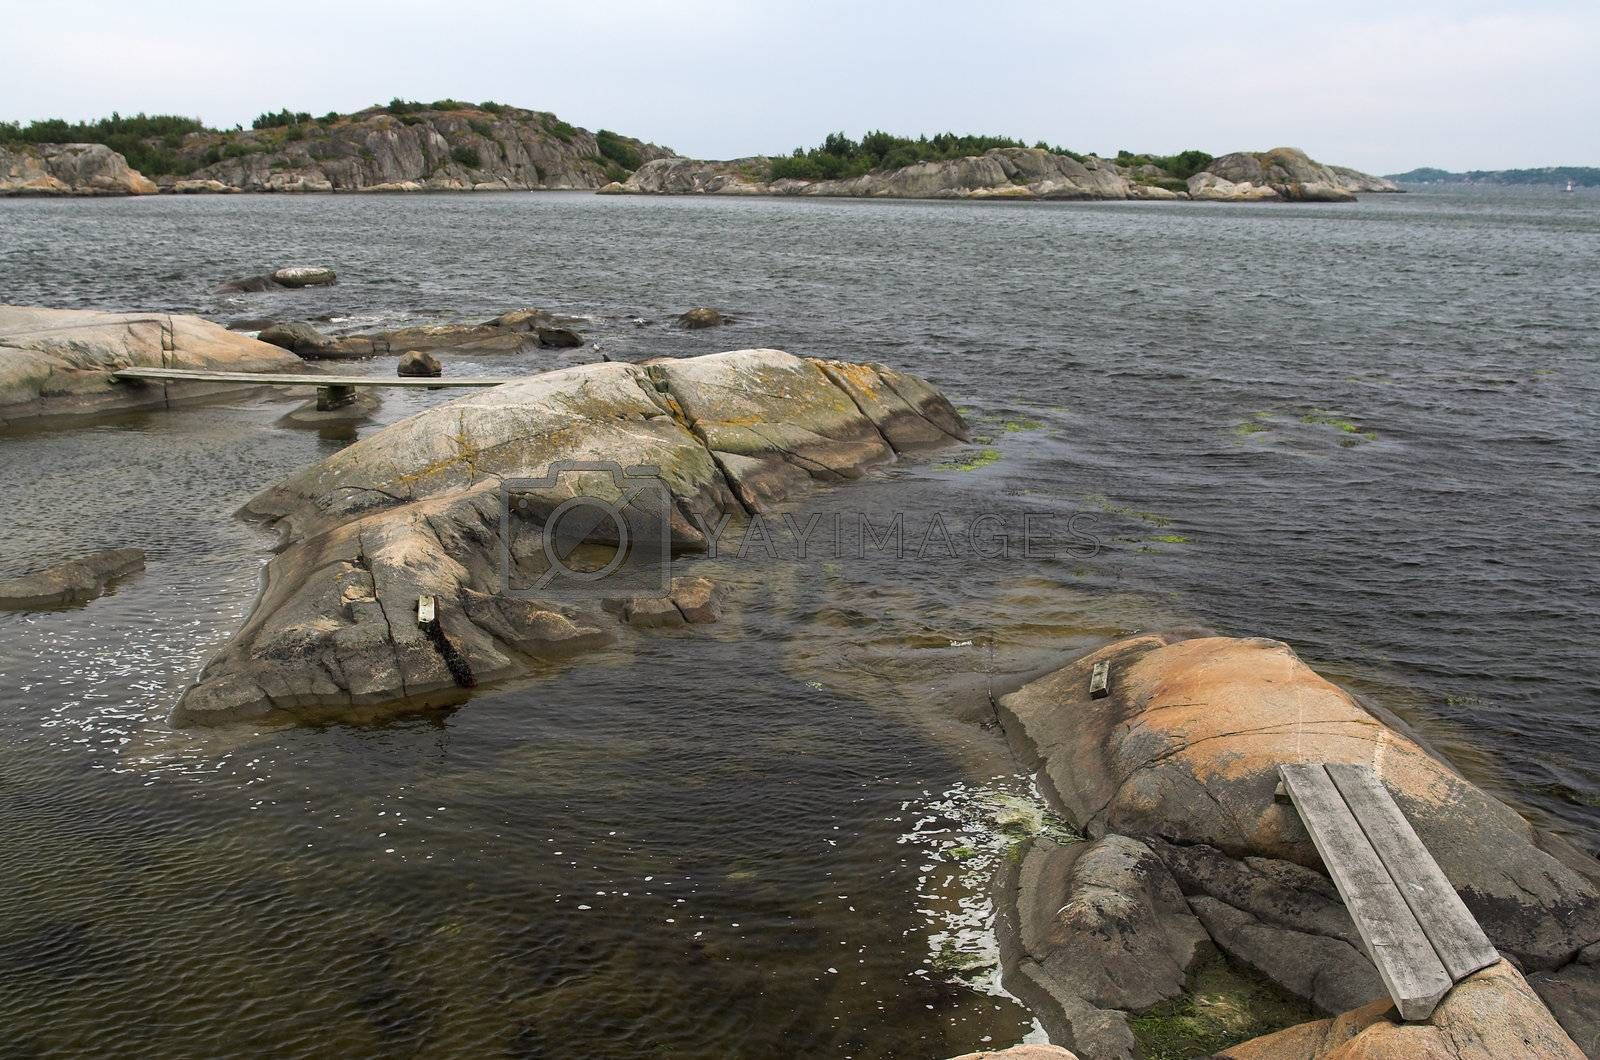 Rocks in the sea, connected by a wooden foot path; a rocky island in the background. Western Swedish coast.